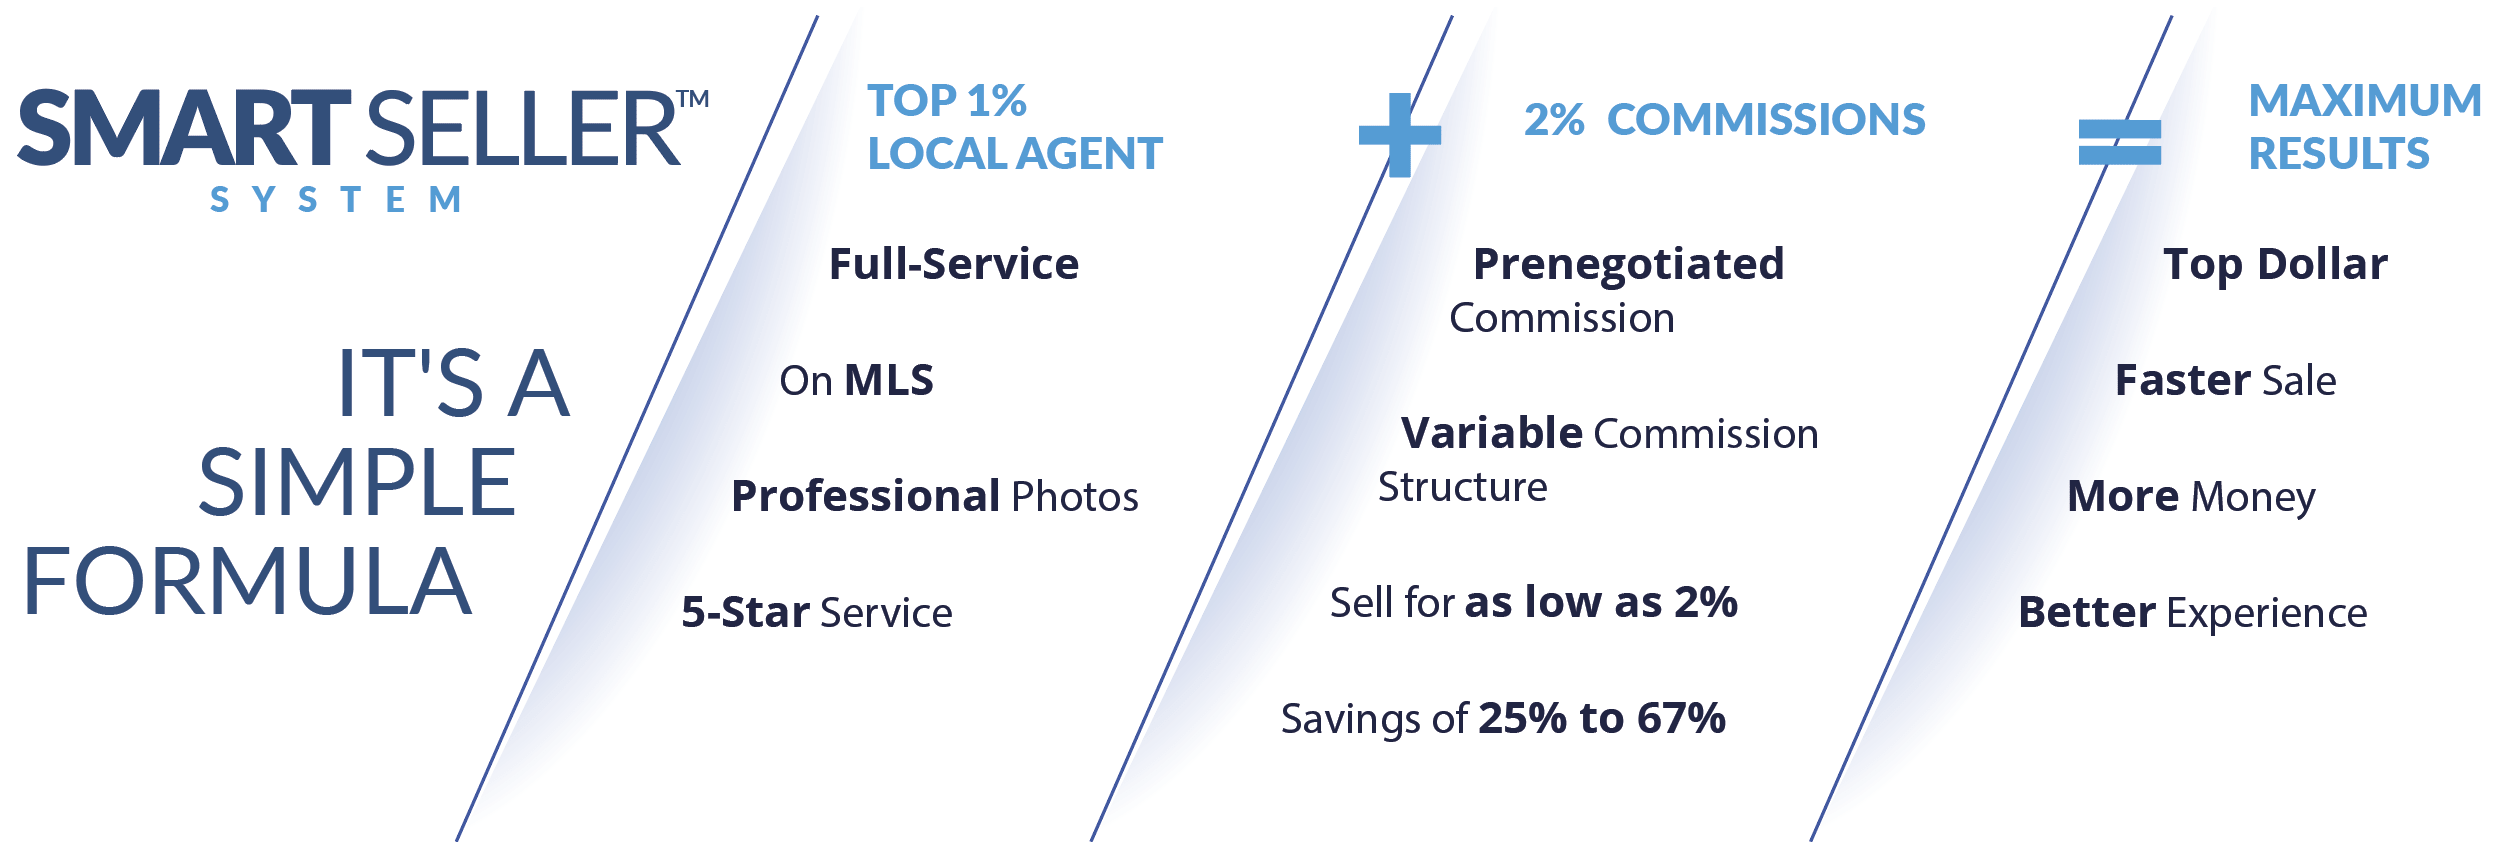 SMART SELLER System - Top 1% Agent (full-service, mls) + 2% commissions (big savings on commission) = maximum results (top dollar, better experience)